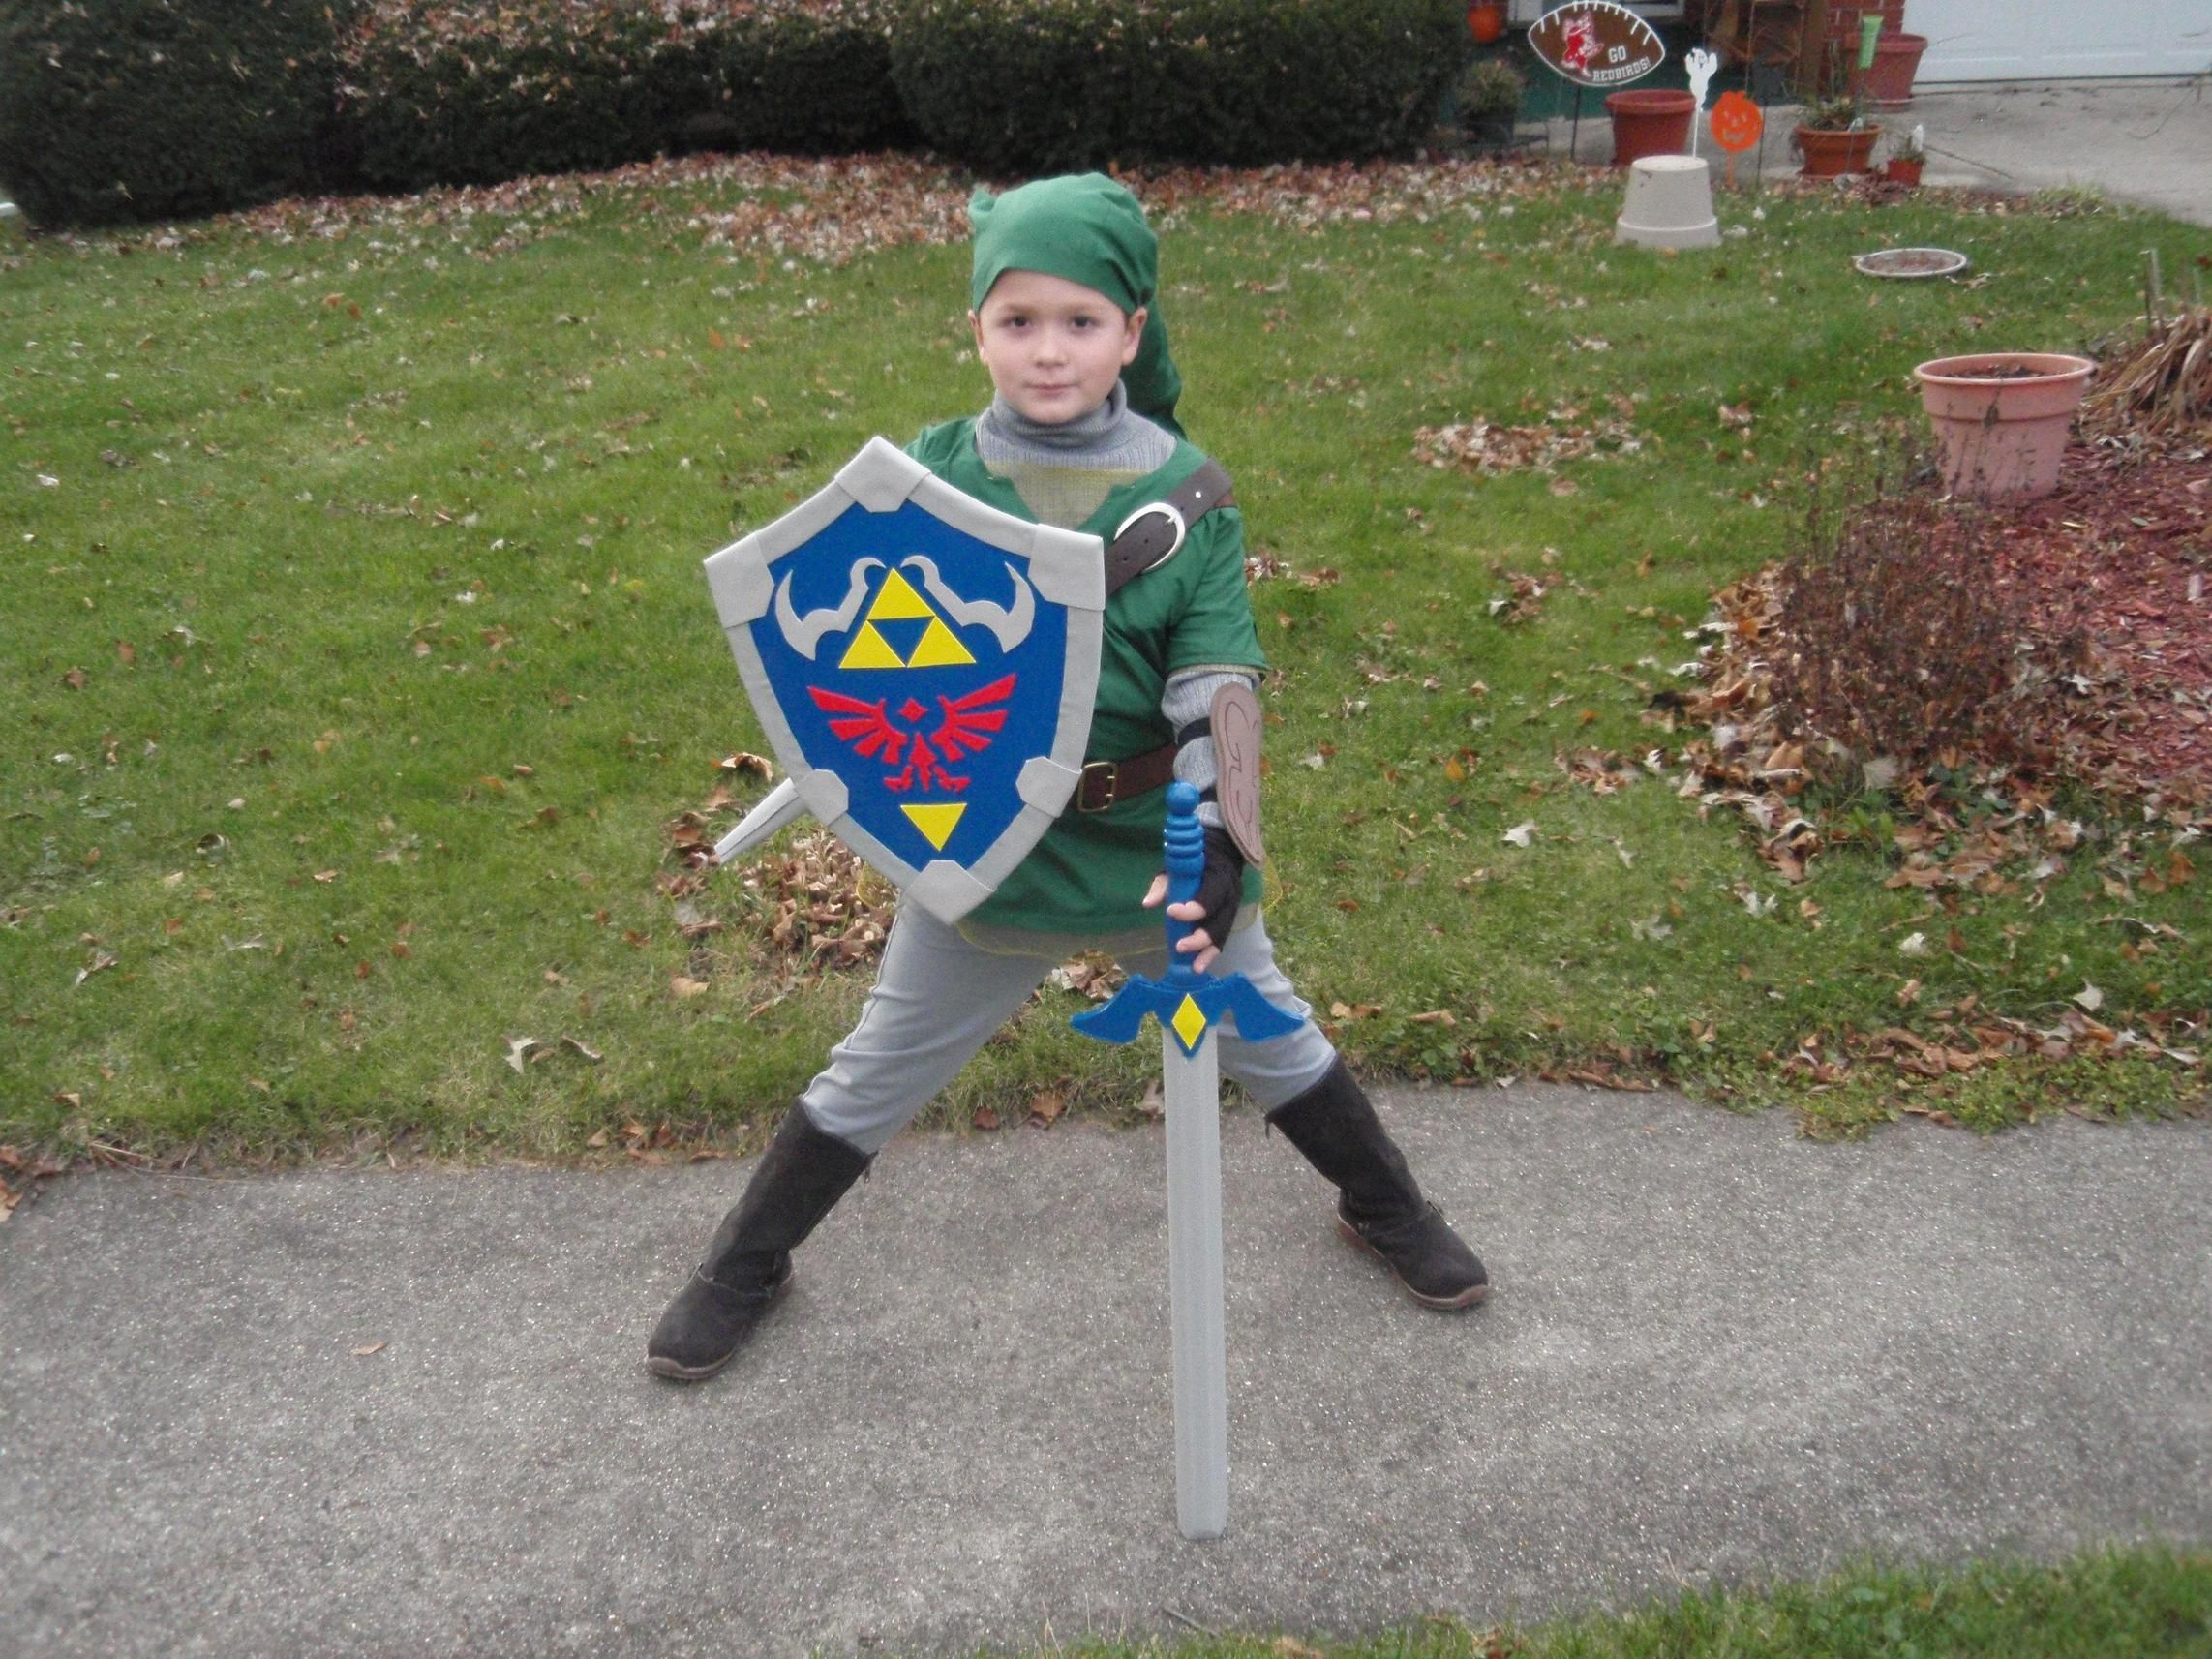 Kid cosplay - Link from The Legend of Zelda - #TLoZ #cosplays  sc 1 st  Pinterest & Kid cosplay - Link from The Legend of Zelda - #TLoZ #cosplays | kid ...